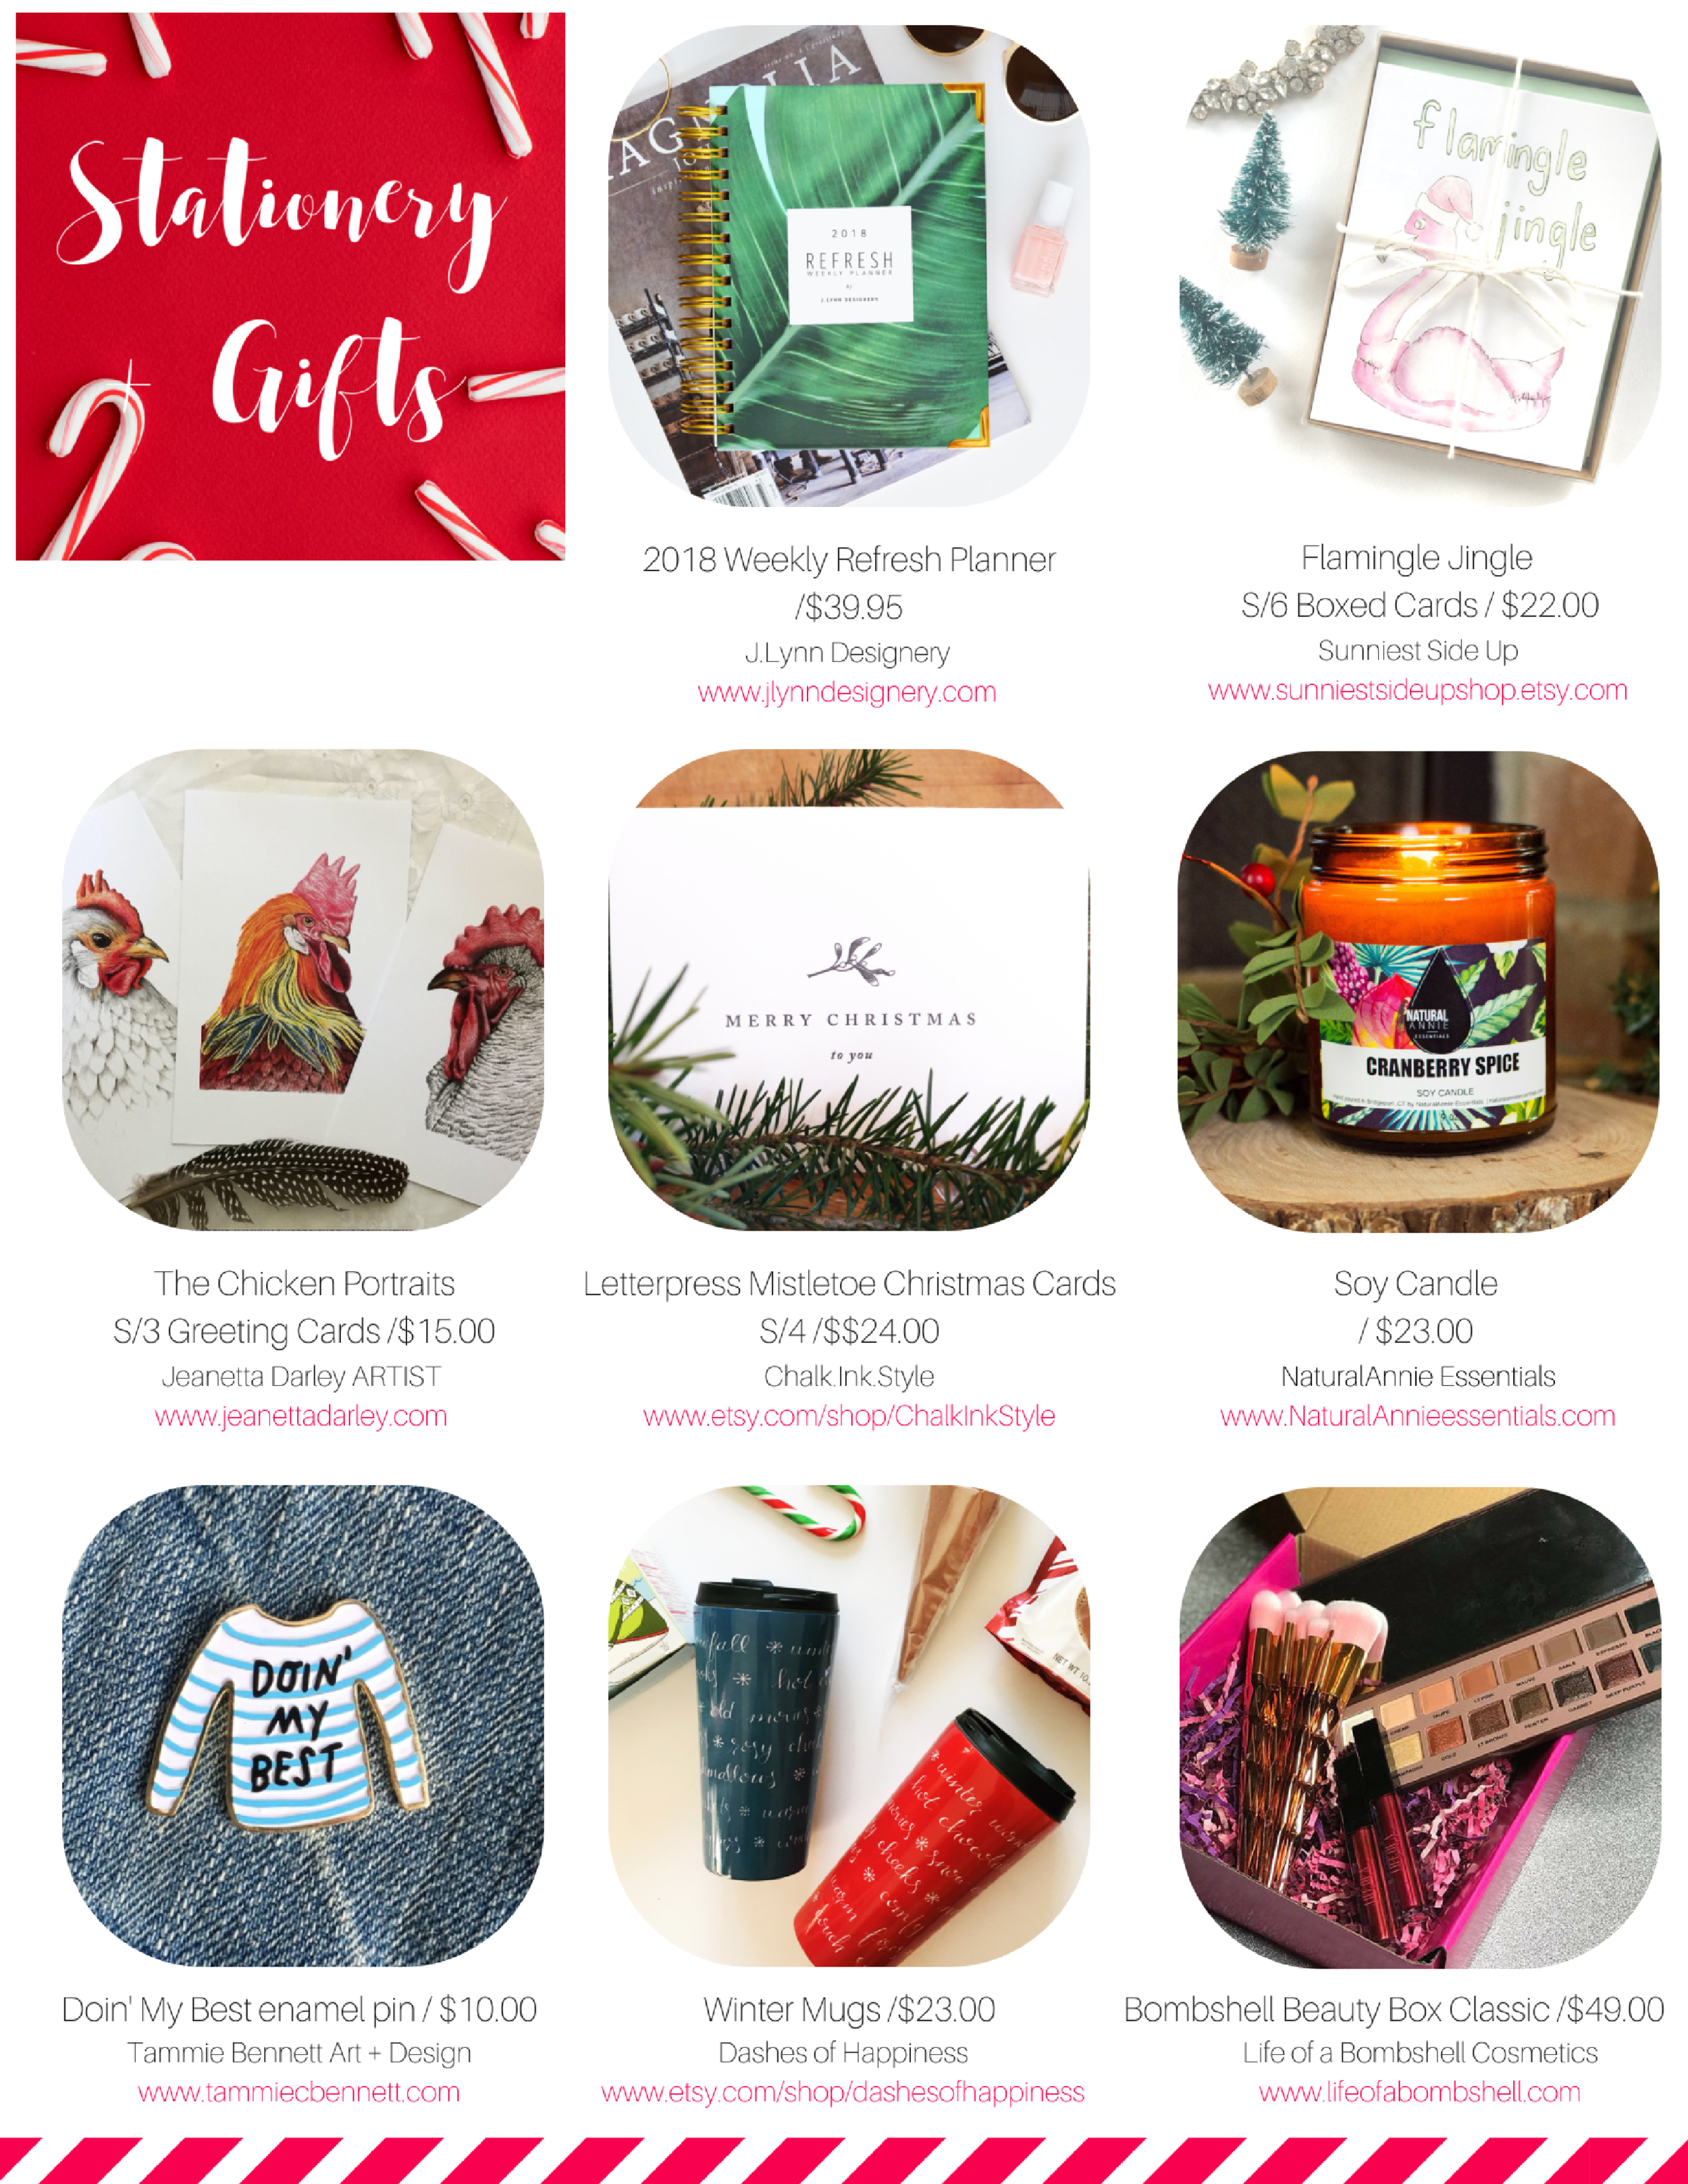 stationery + gifts holiday gift guide 2017 the wholesale collective